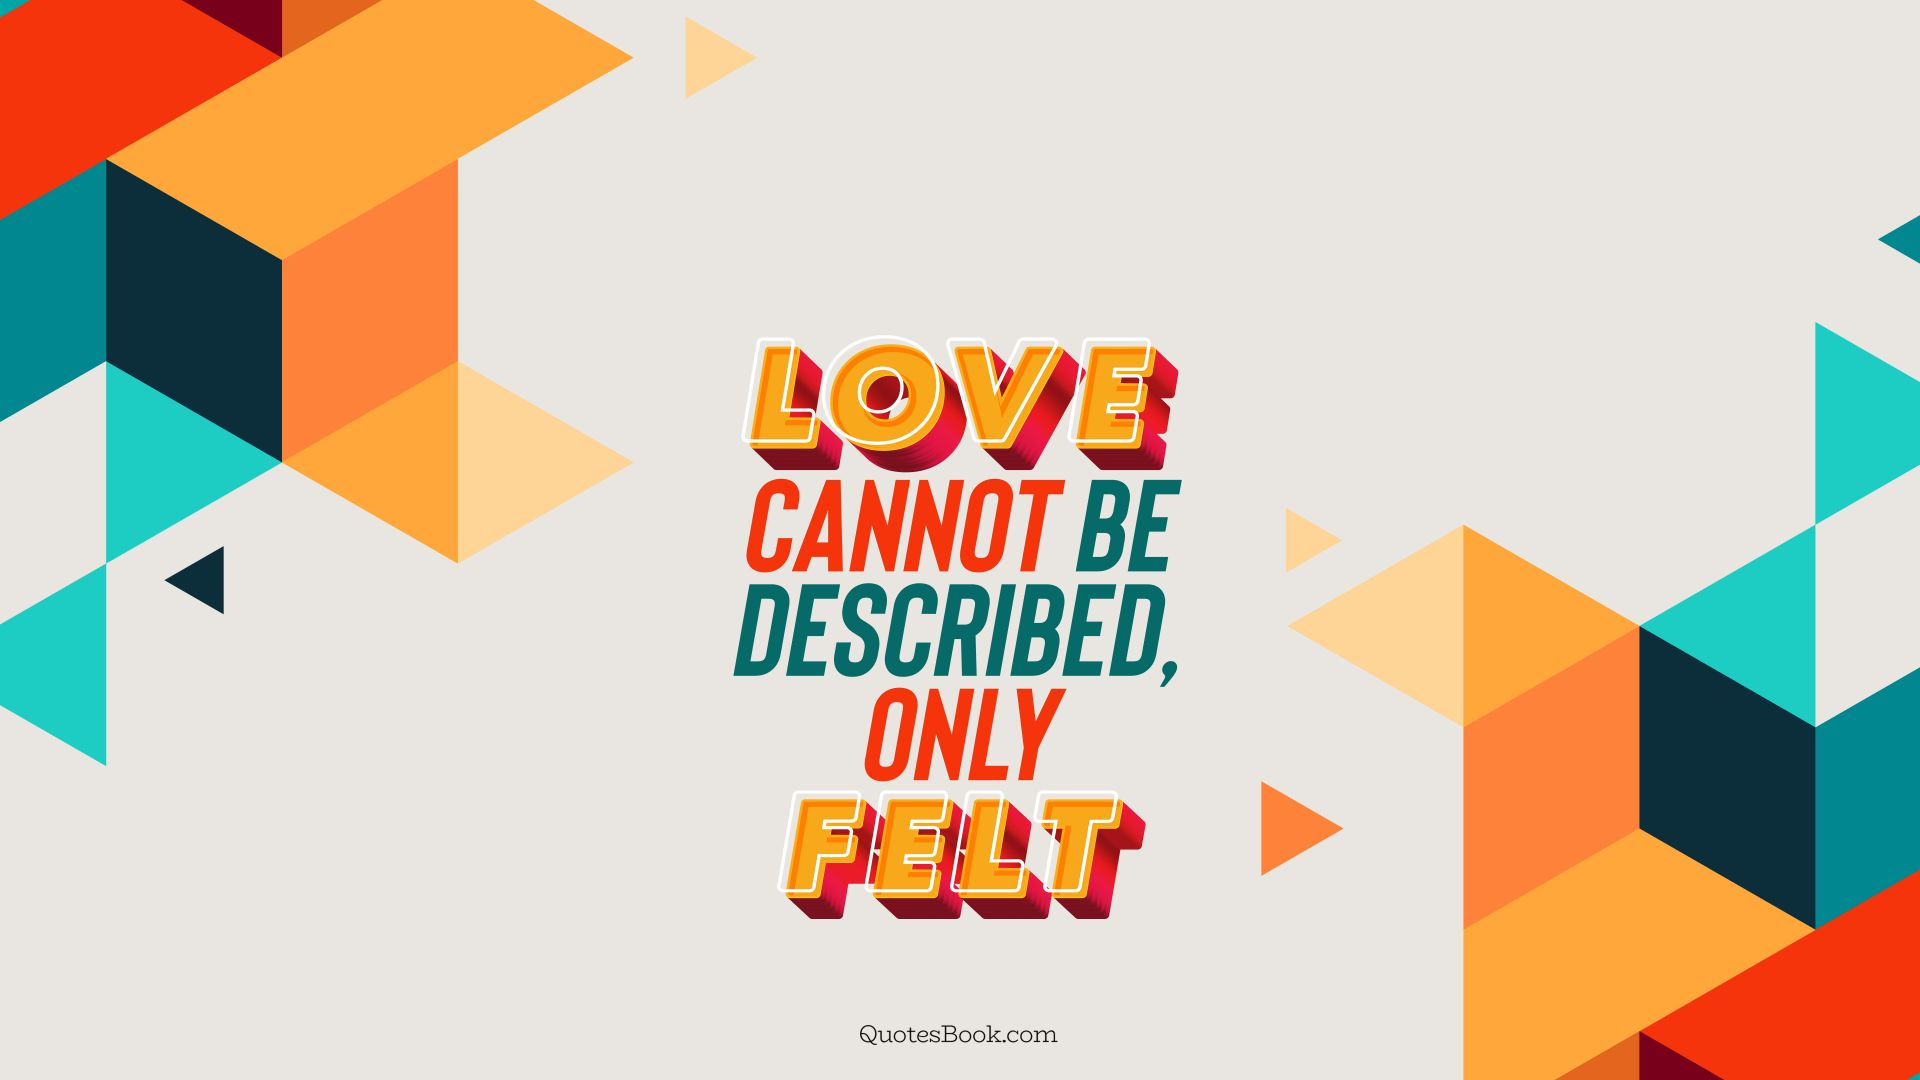 Love cannot be described, only felt. - Quote by QuotesBook